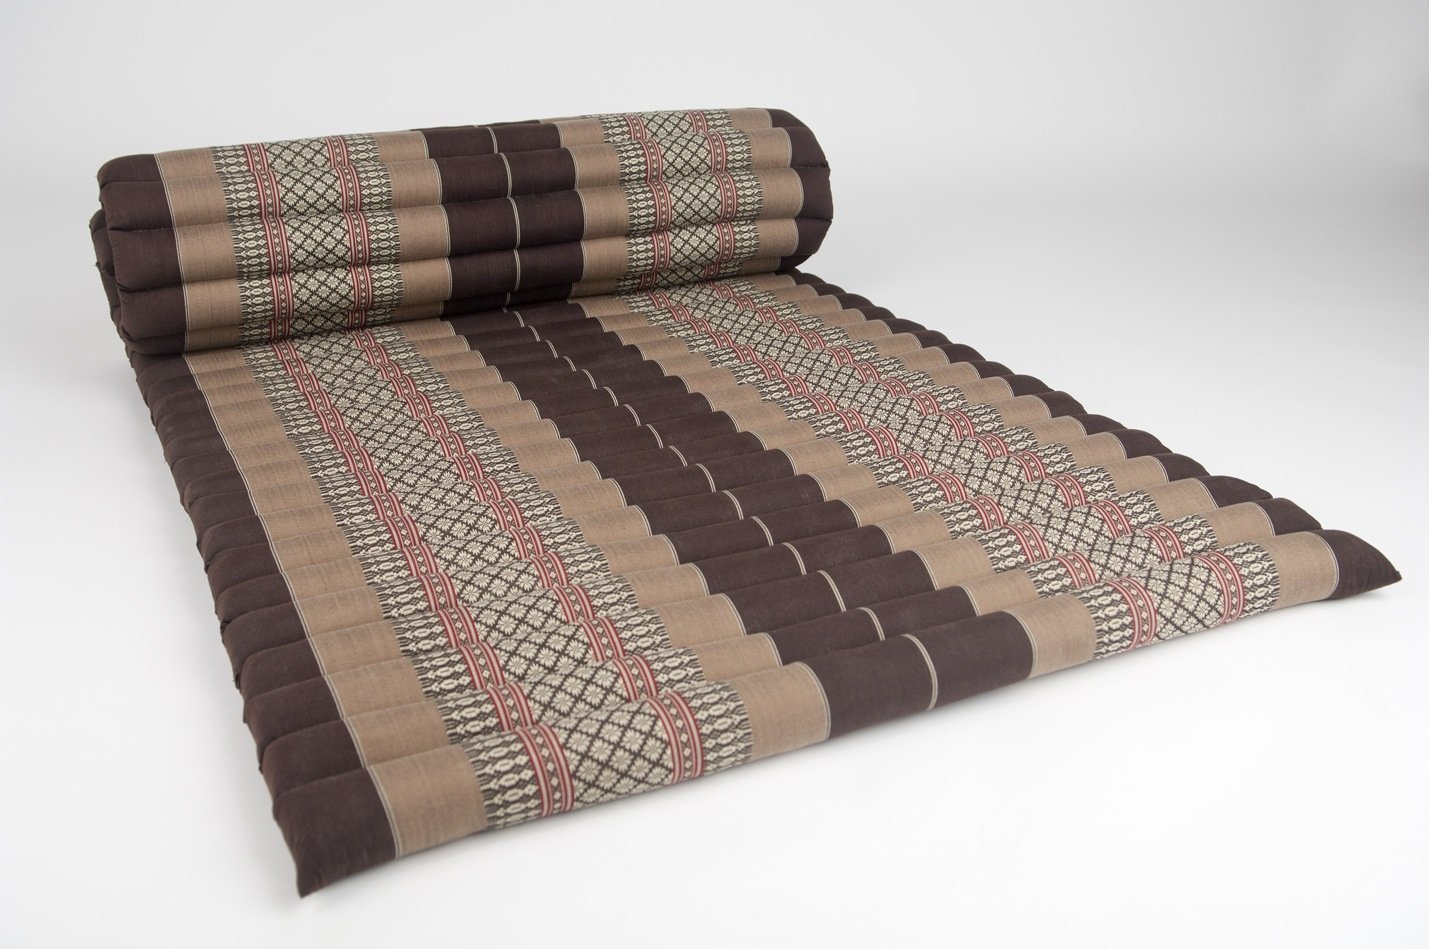 Design by UnseenThailand Roll Up Thai Mattress, Kapok Fabric, Premium Double Stitched, 79x30x2 inches. (Brown Cream)